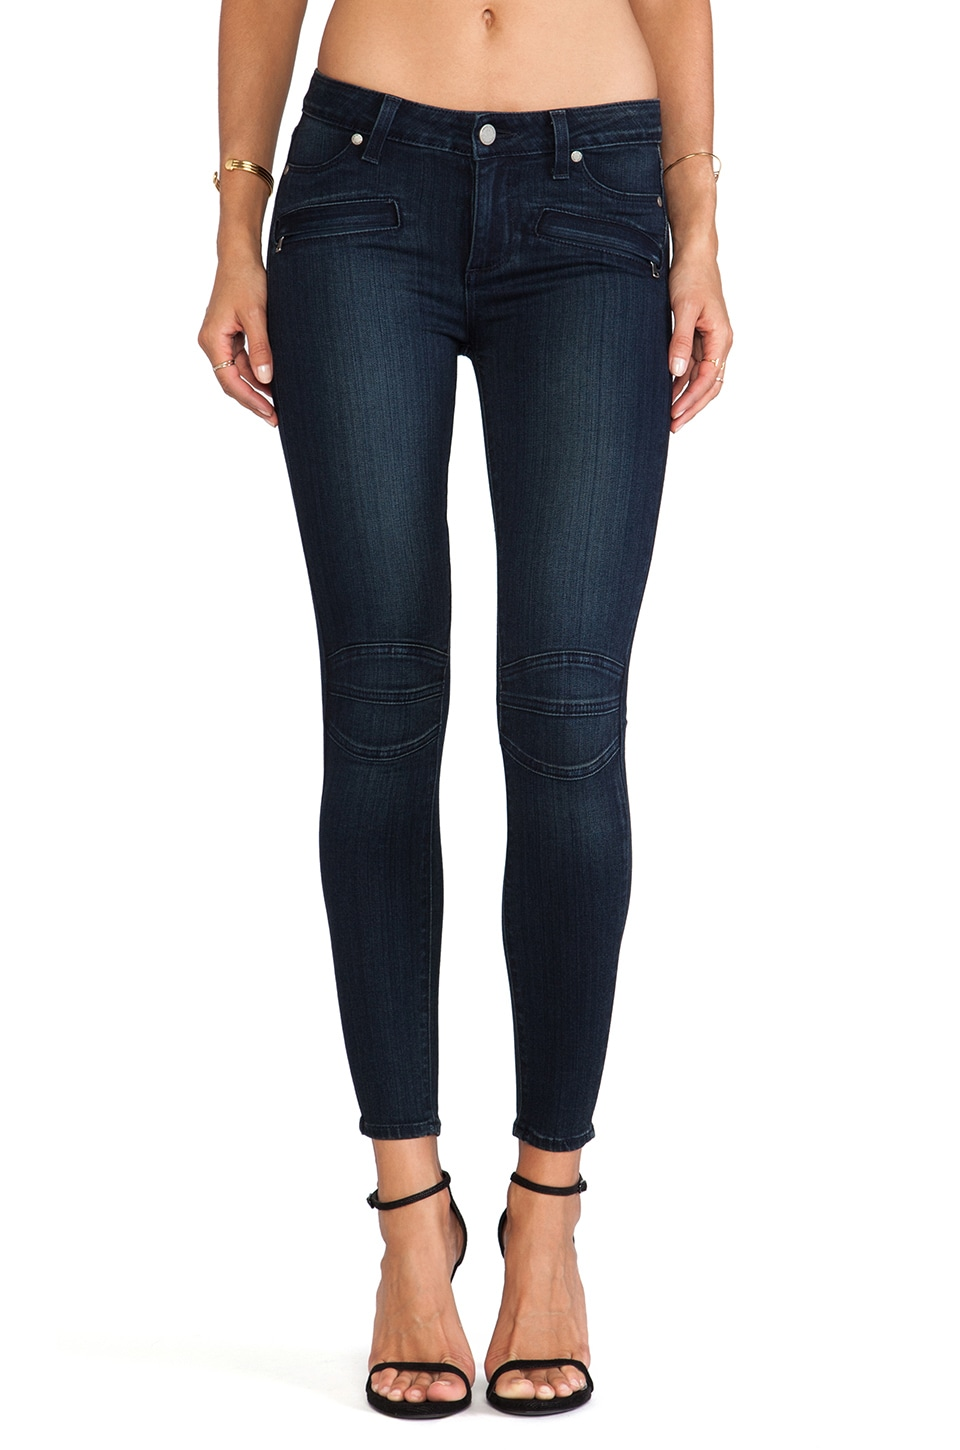 Paige Denim Ollie Skinny in Midlake